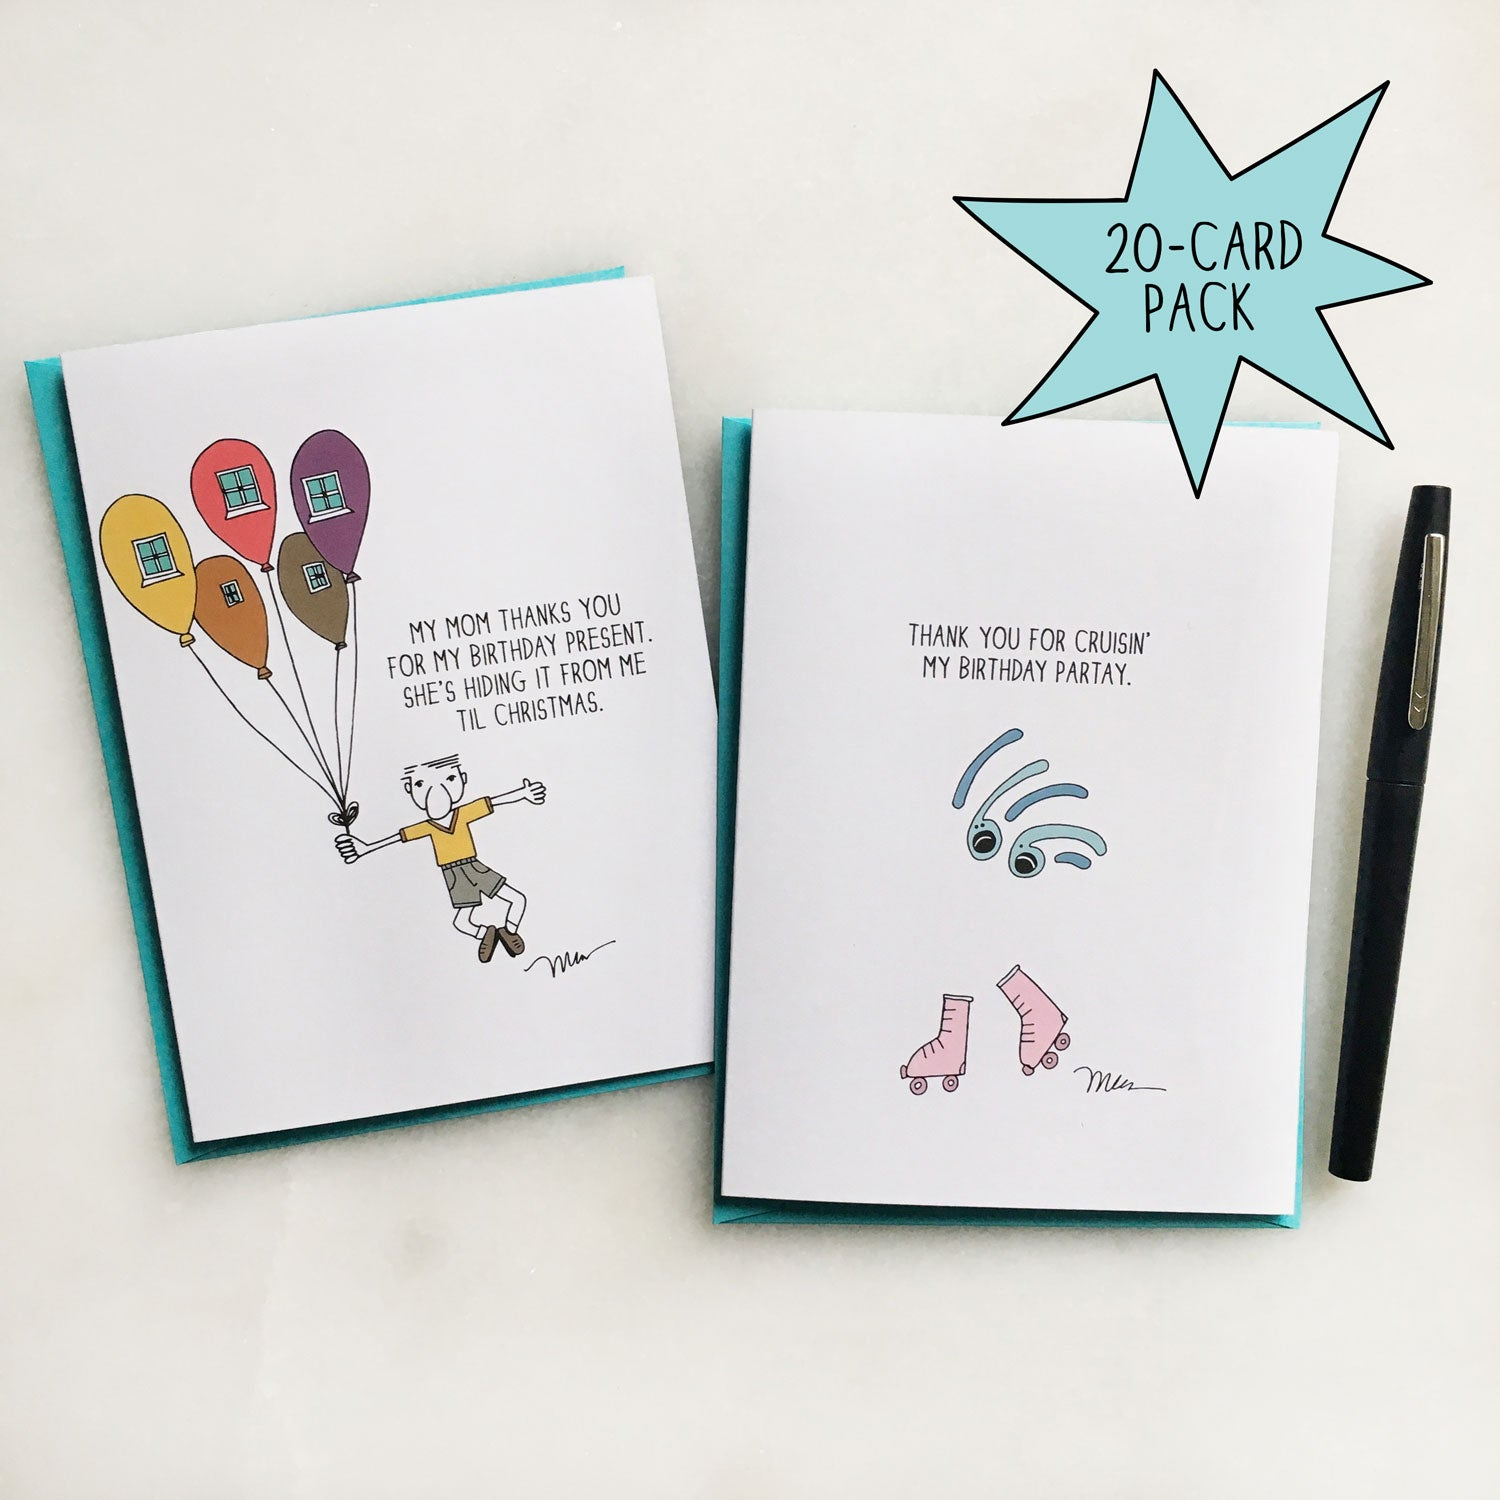 Birthday Party Thank You Cards 20 Pack